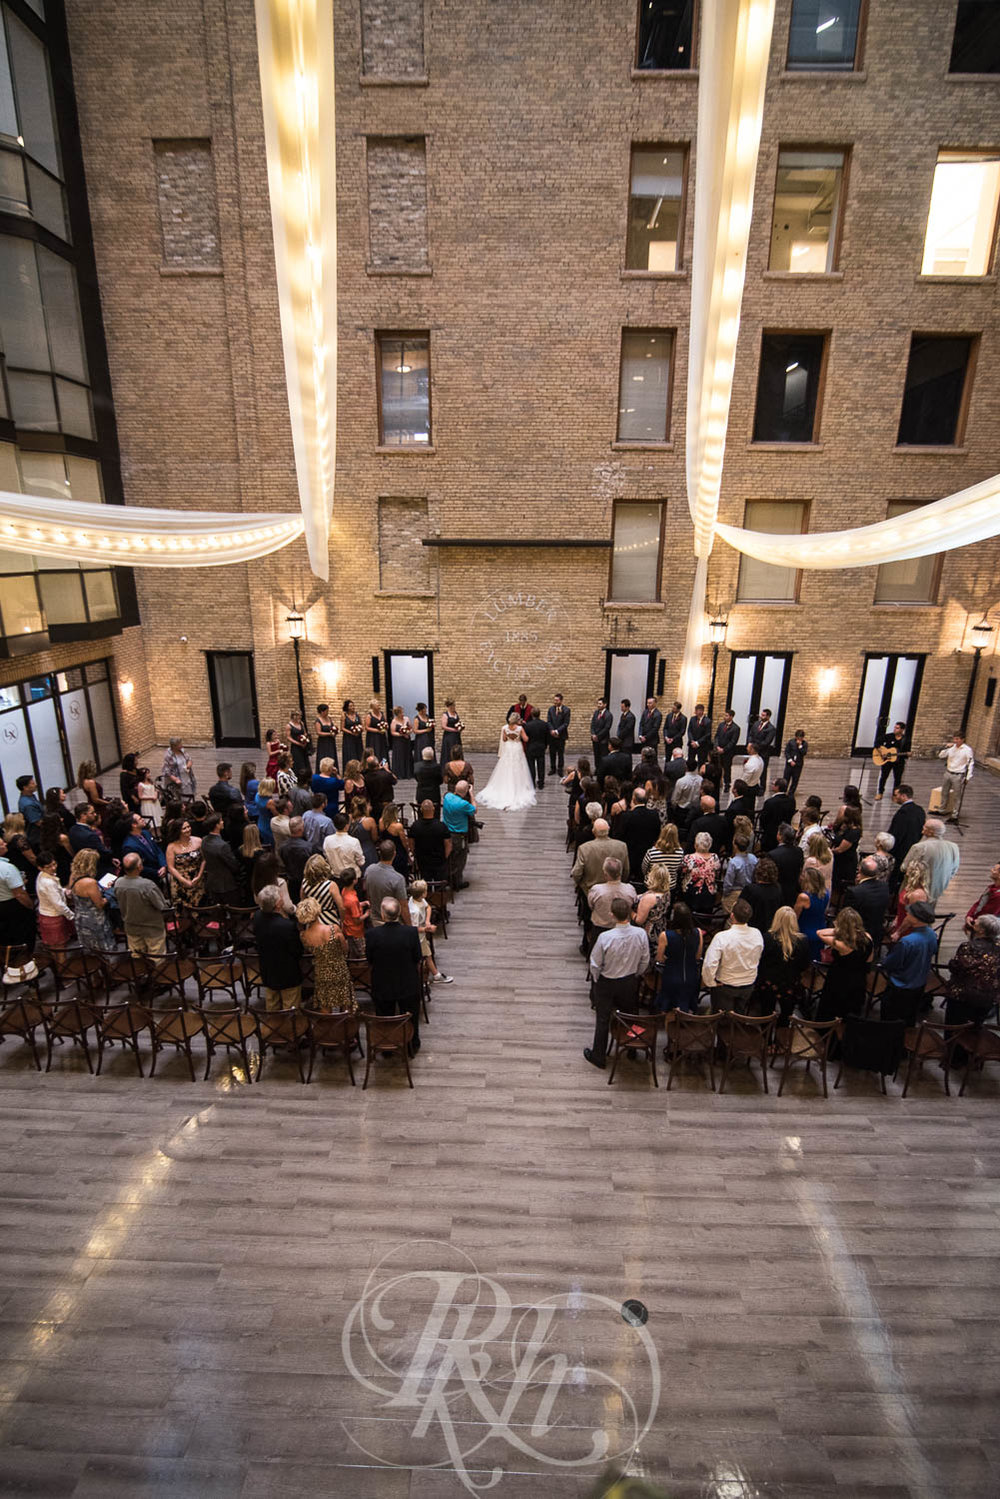 Katie & Jeff - Minnesota Wedding Photography - Lumber Exchange Building - RKH Images - Blog  (34 of 49).jpg